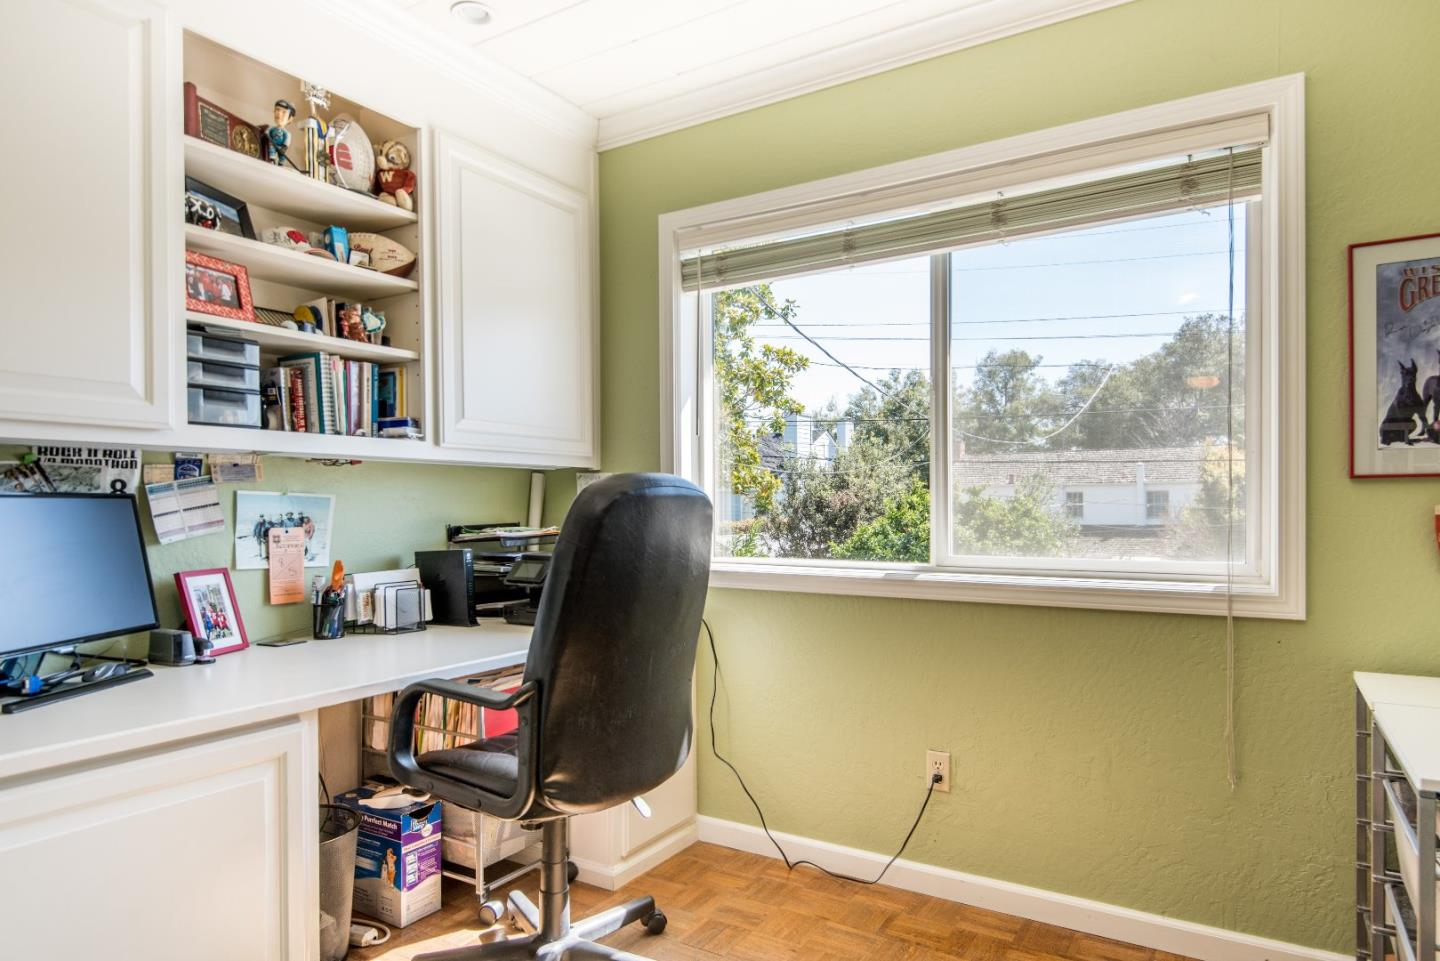 Additional photo for property listing at 1900 University Way  SAN JOSE, CALIFORNIA 95126